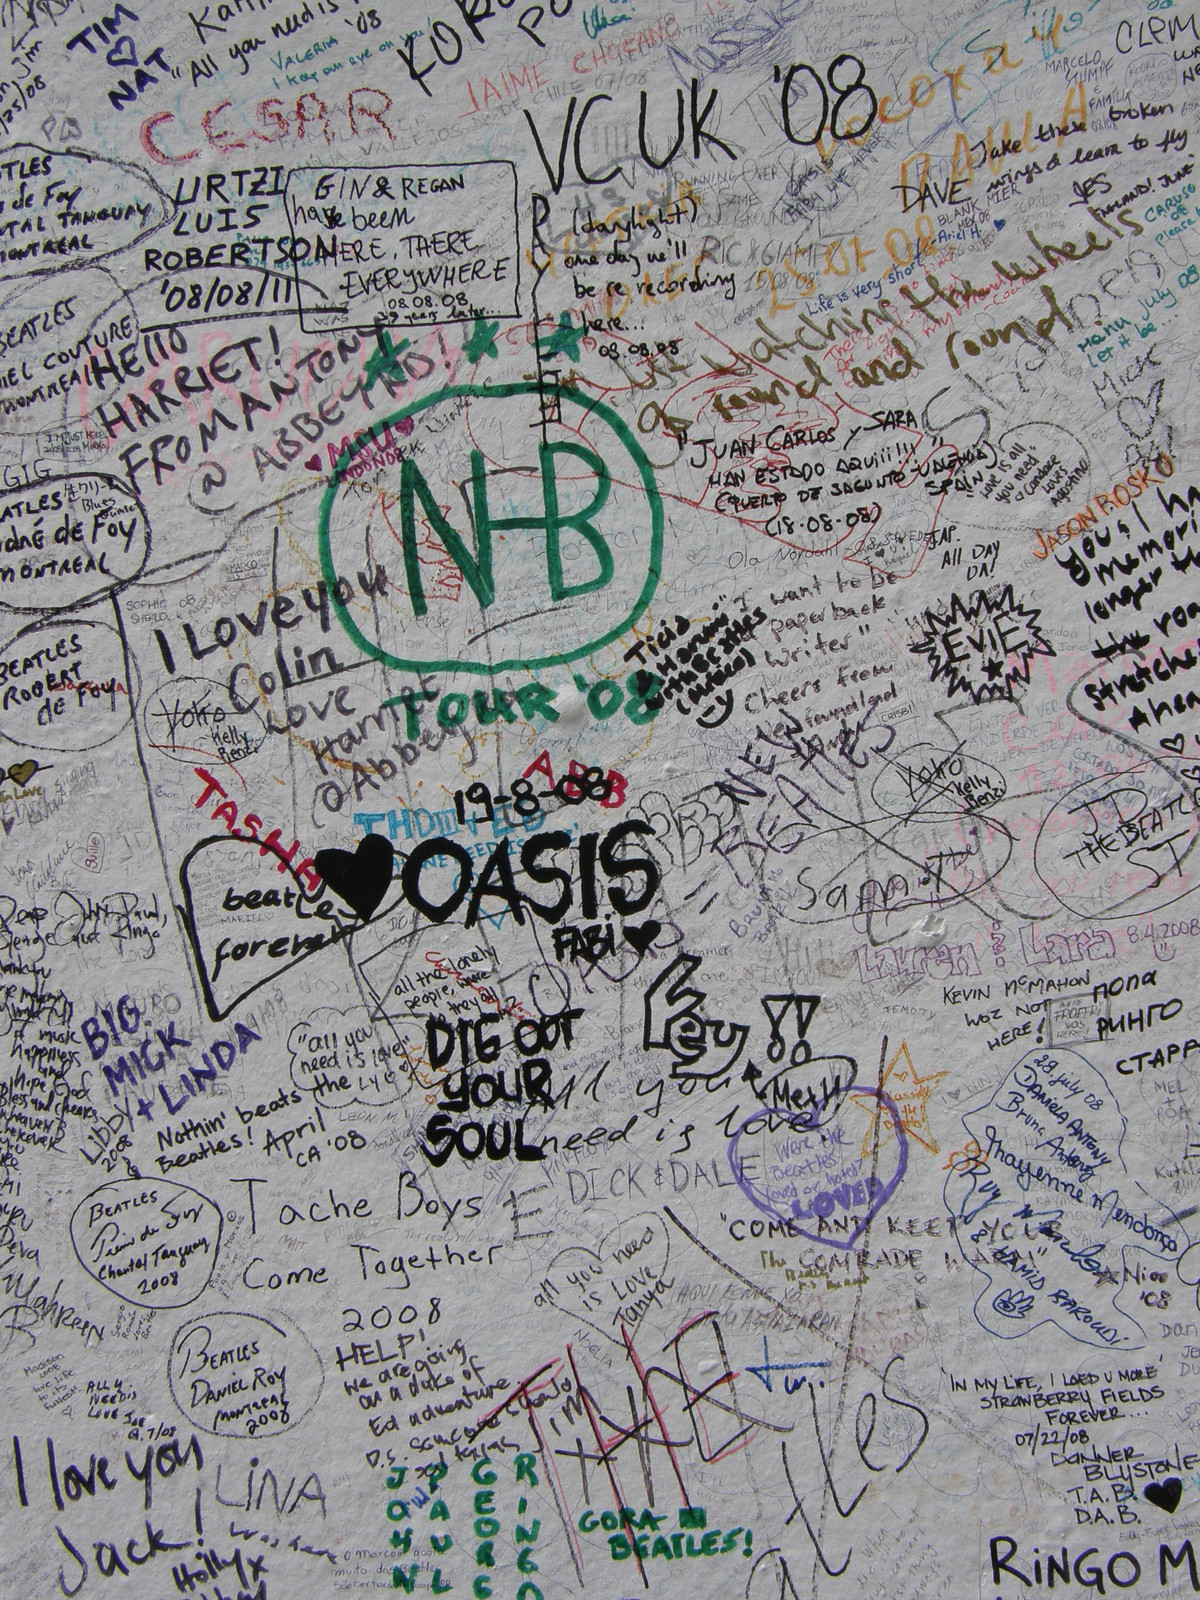 Graffiti on the wall outside Abbey Road Studios